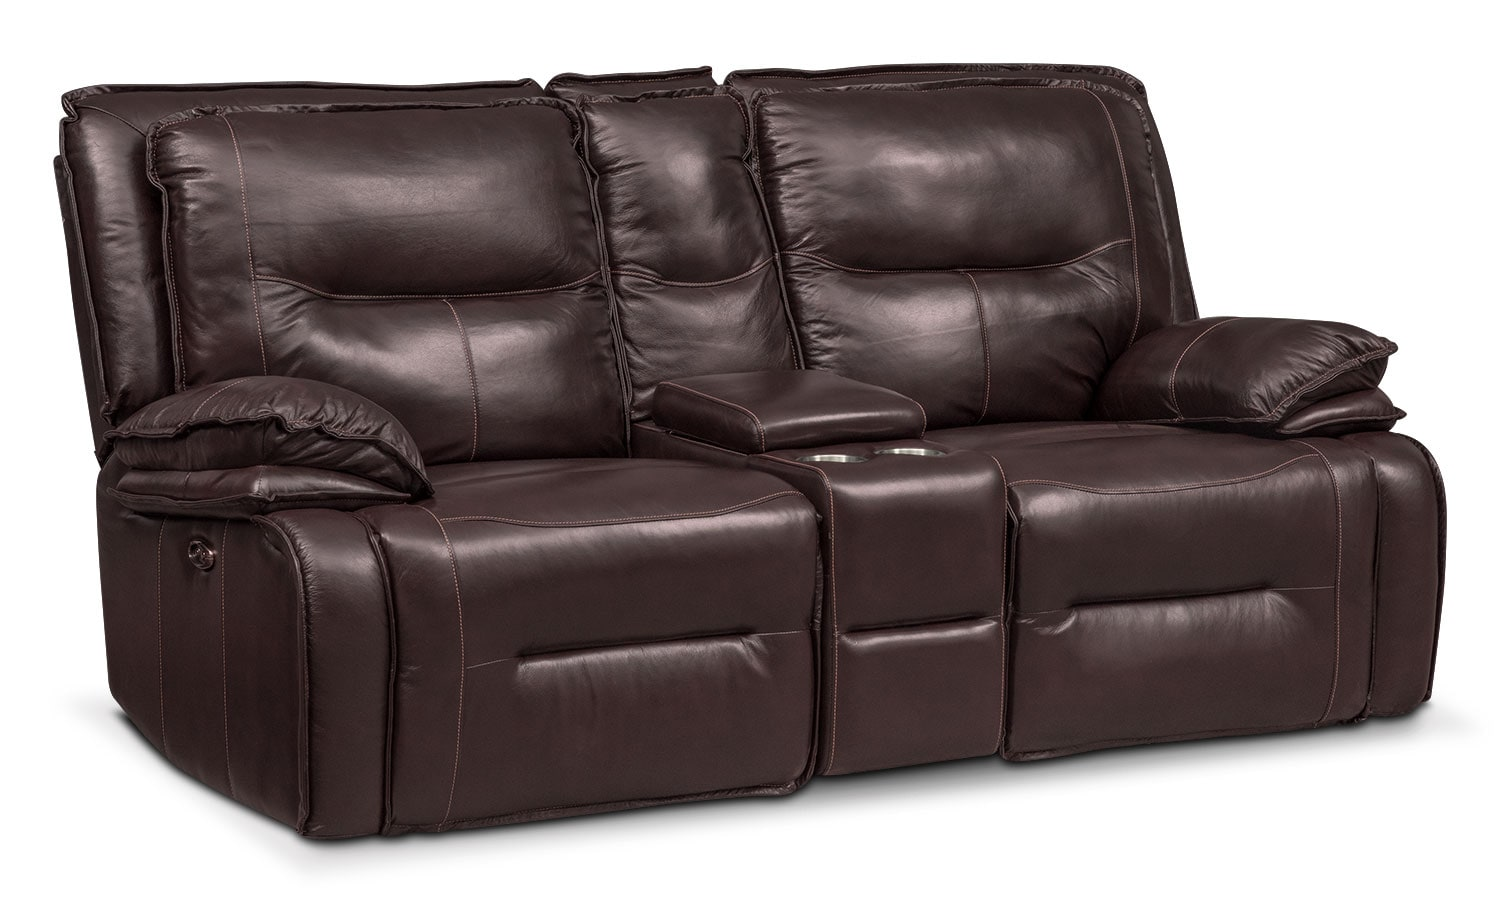 Living Room Furniture - Nikki 3-Piece Power Reclining Sectional with Console - Brown